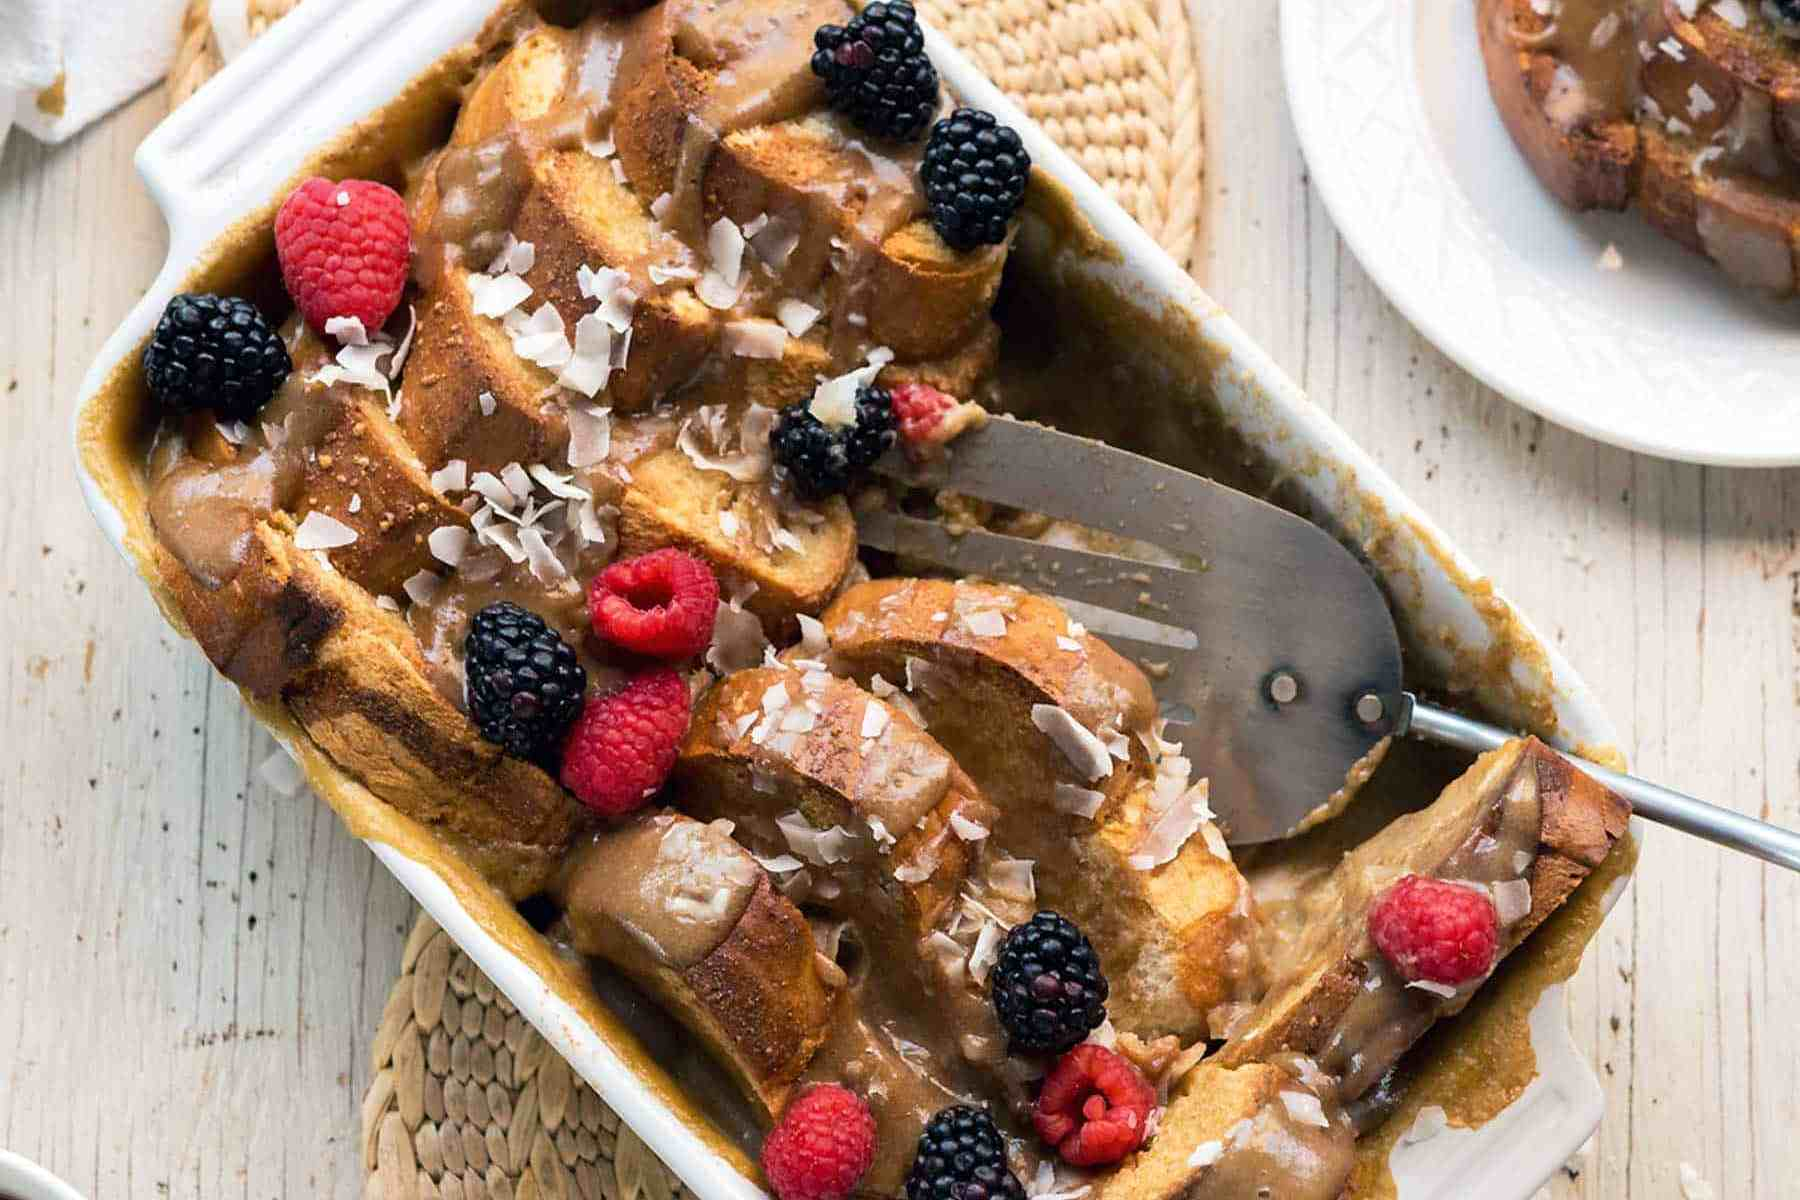 Salted Caramel French Toast Casserole? Yes, please! This decadent brunch staple is vegan, soy-free, and ridiculously delectable. Give it a try, you won't regret it!